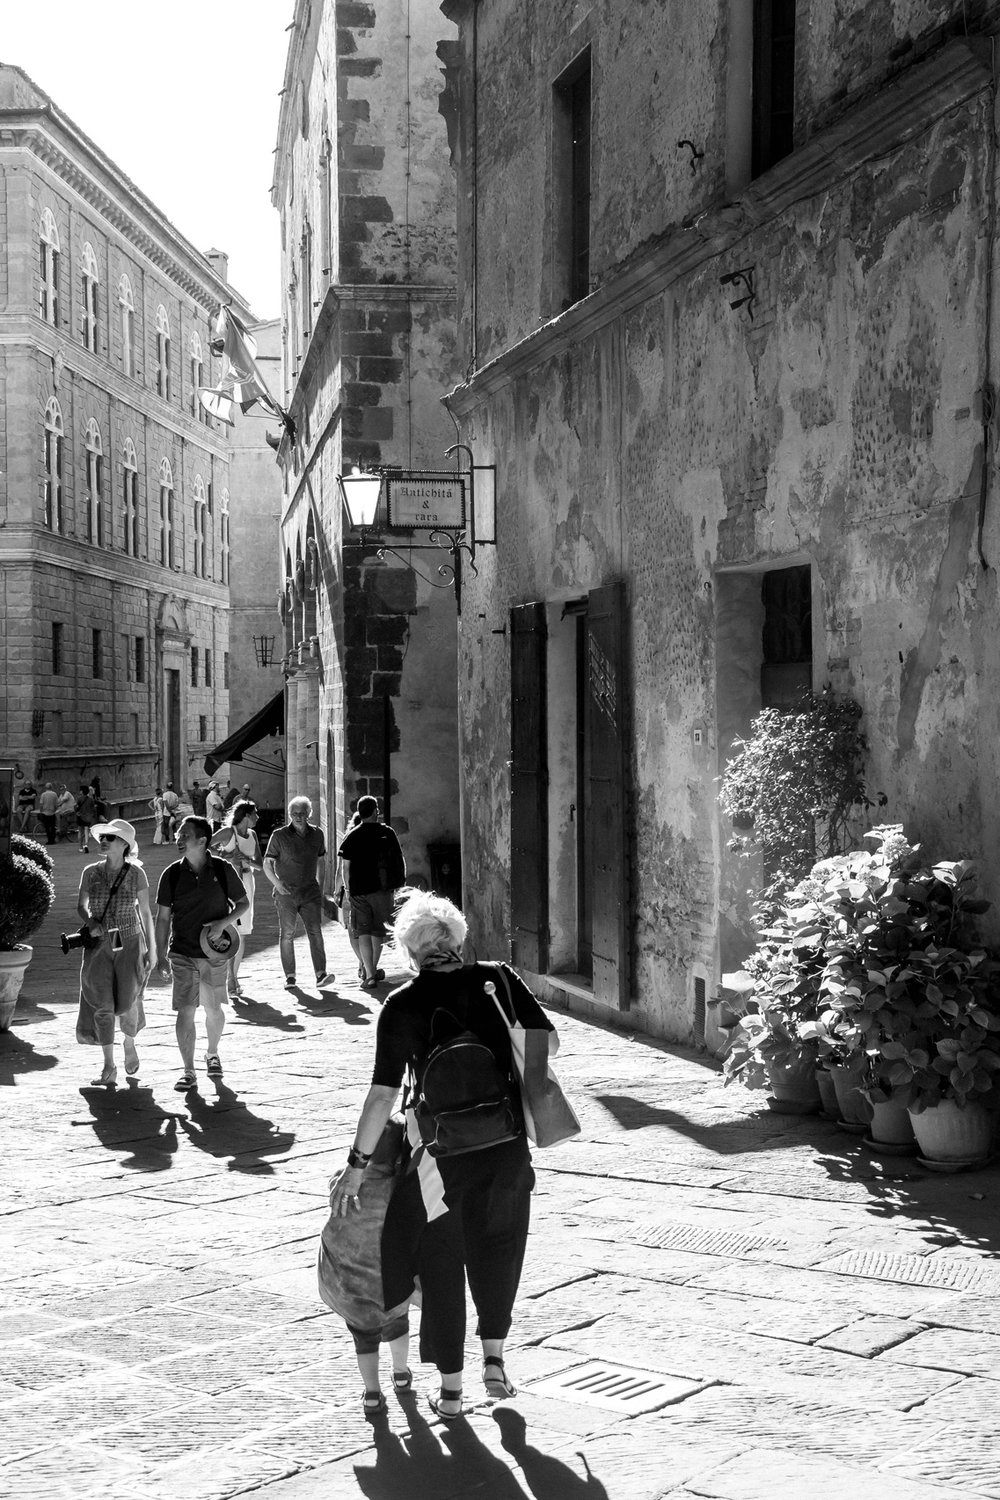 On the street, Pienza, Tuscany